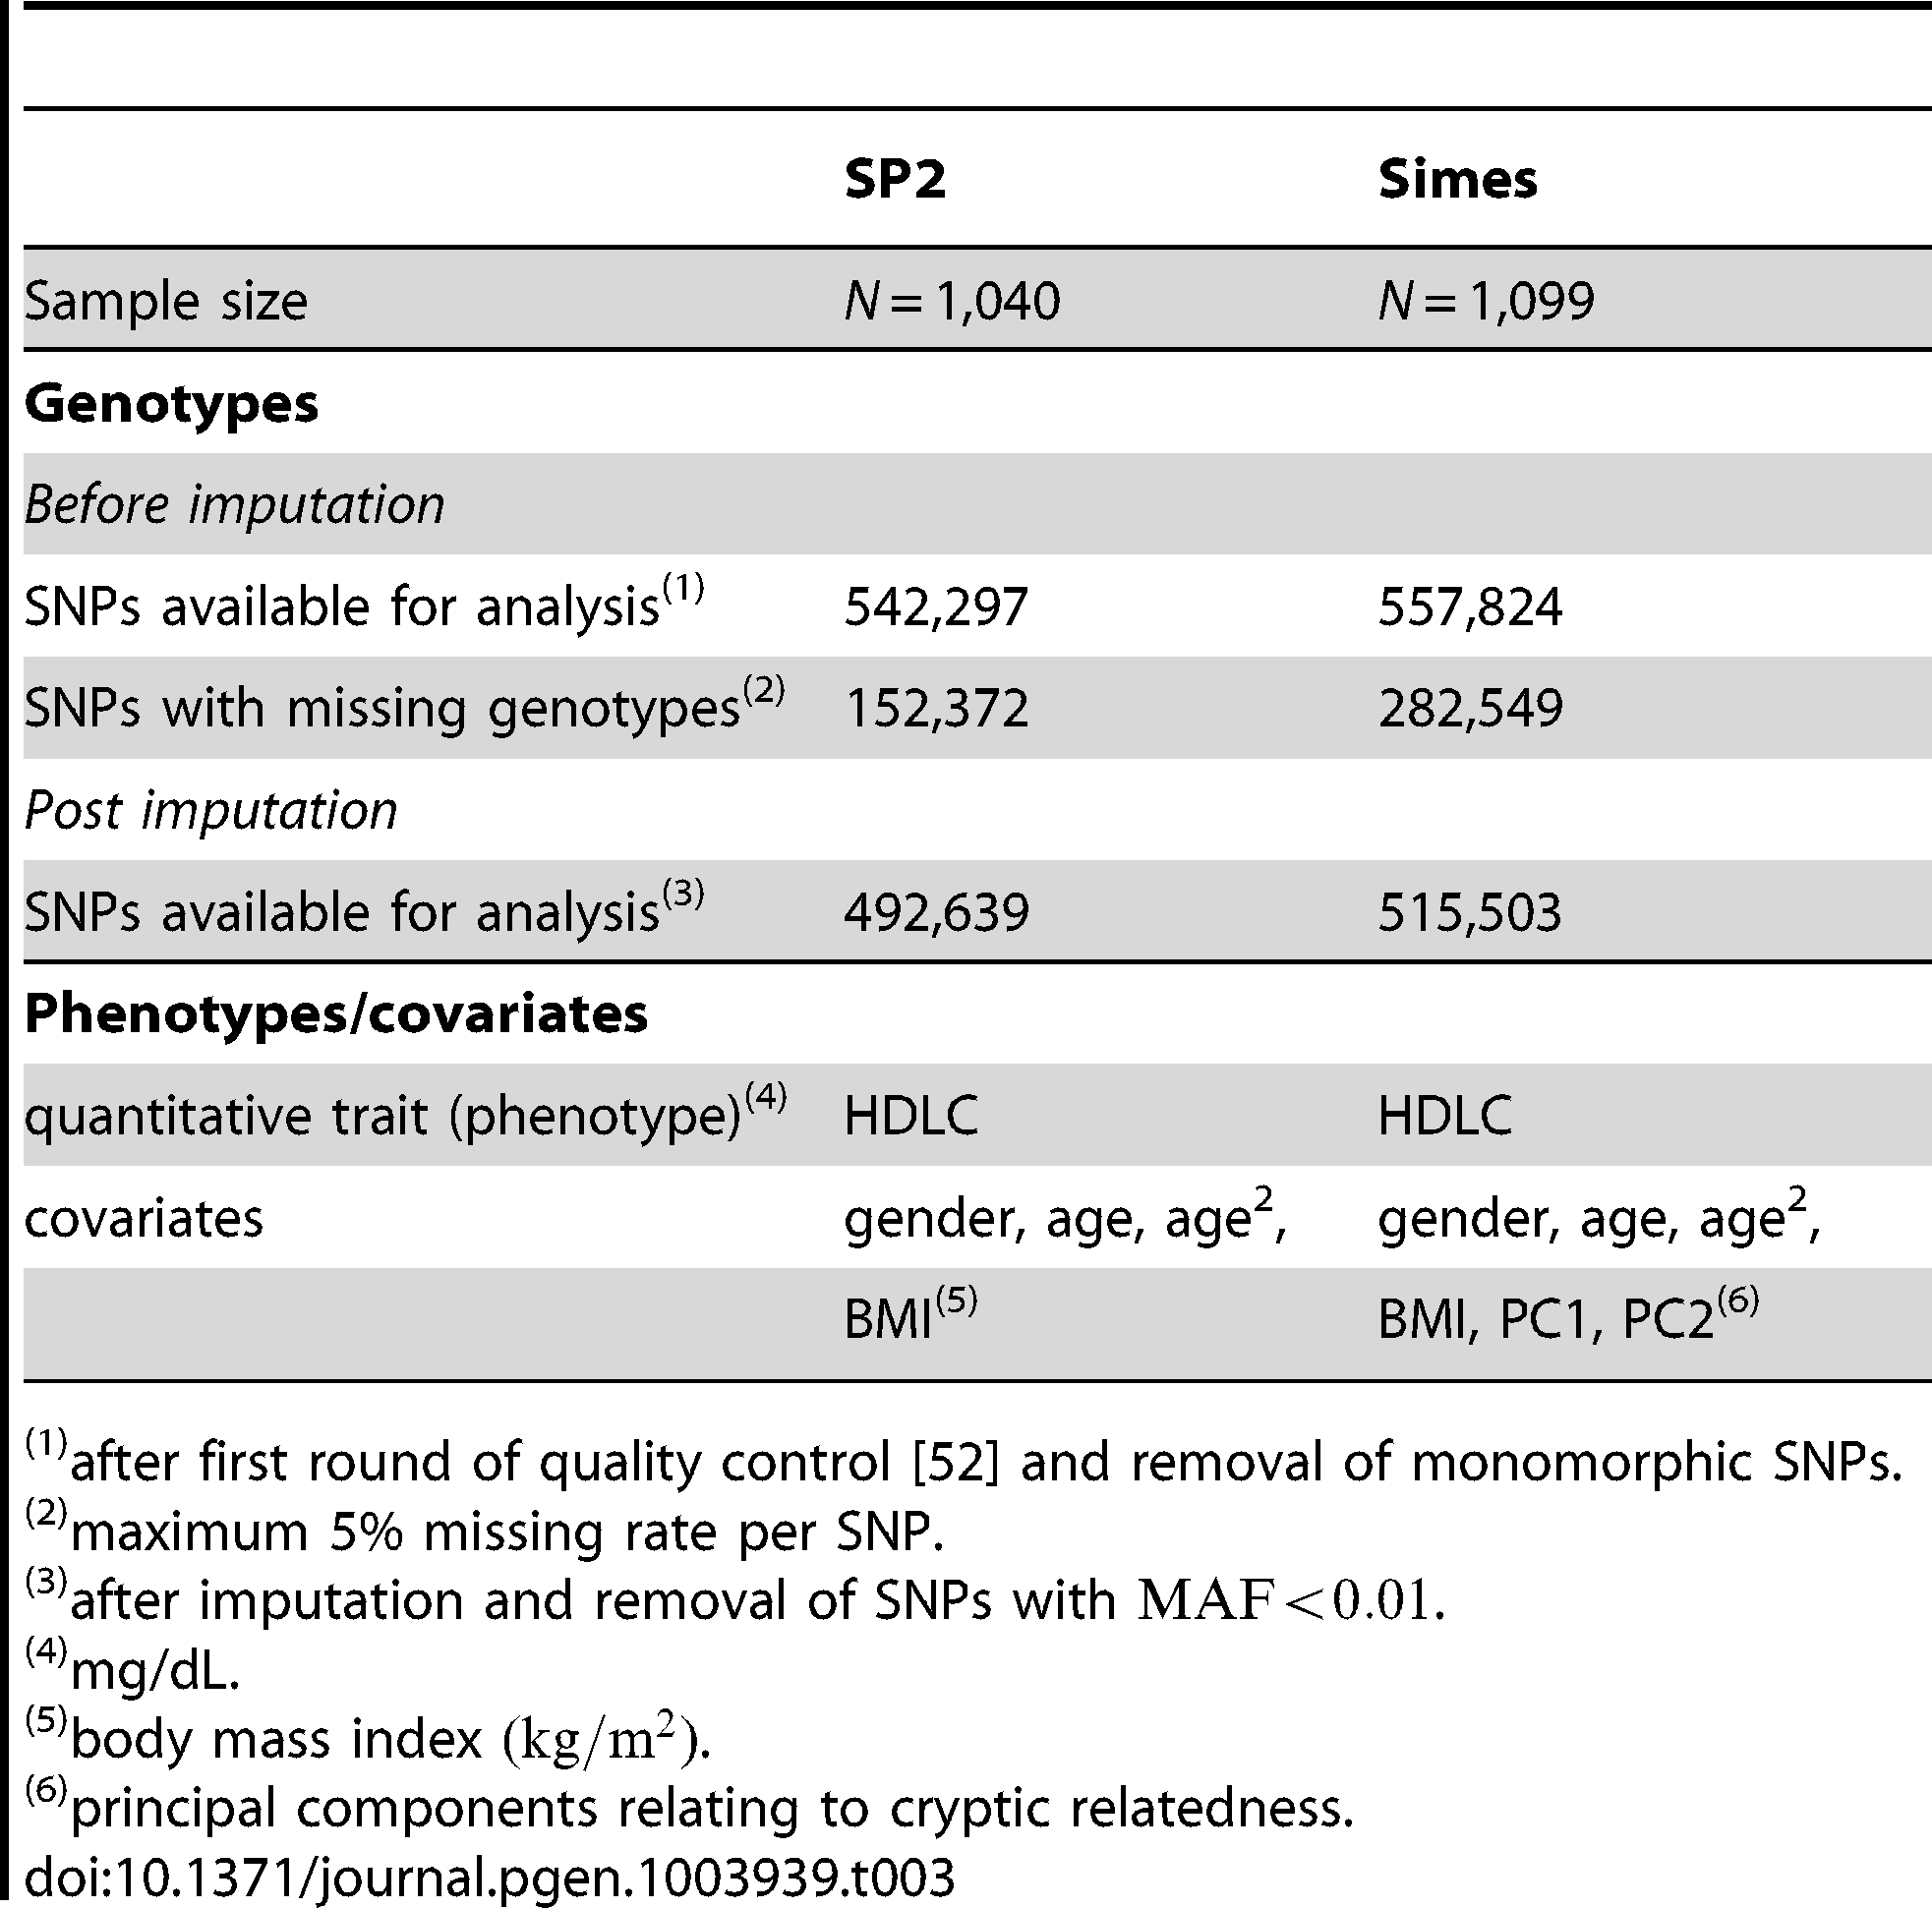 Genotype and phenotype information corresponding to the SP2 and SiMES datasets used in the study.